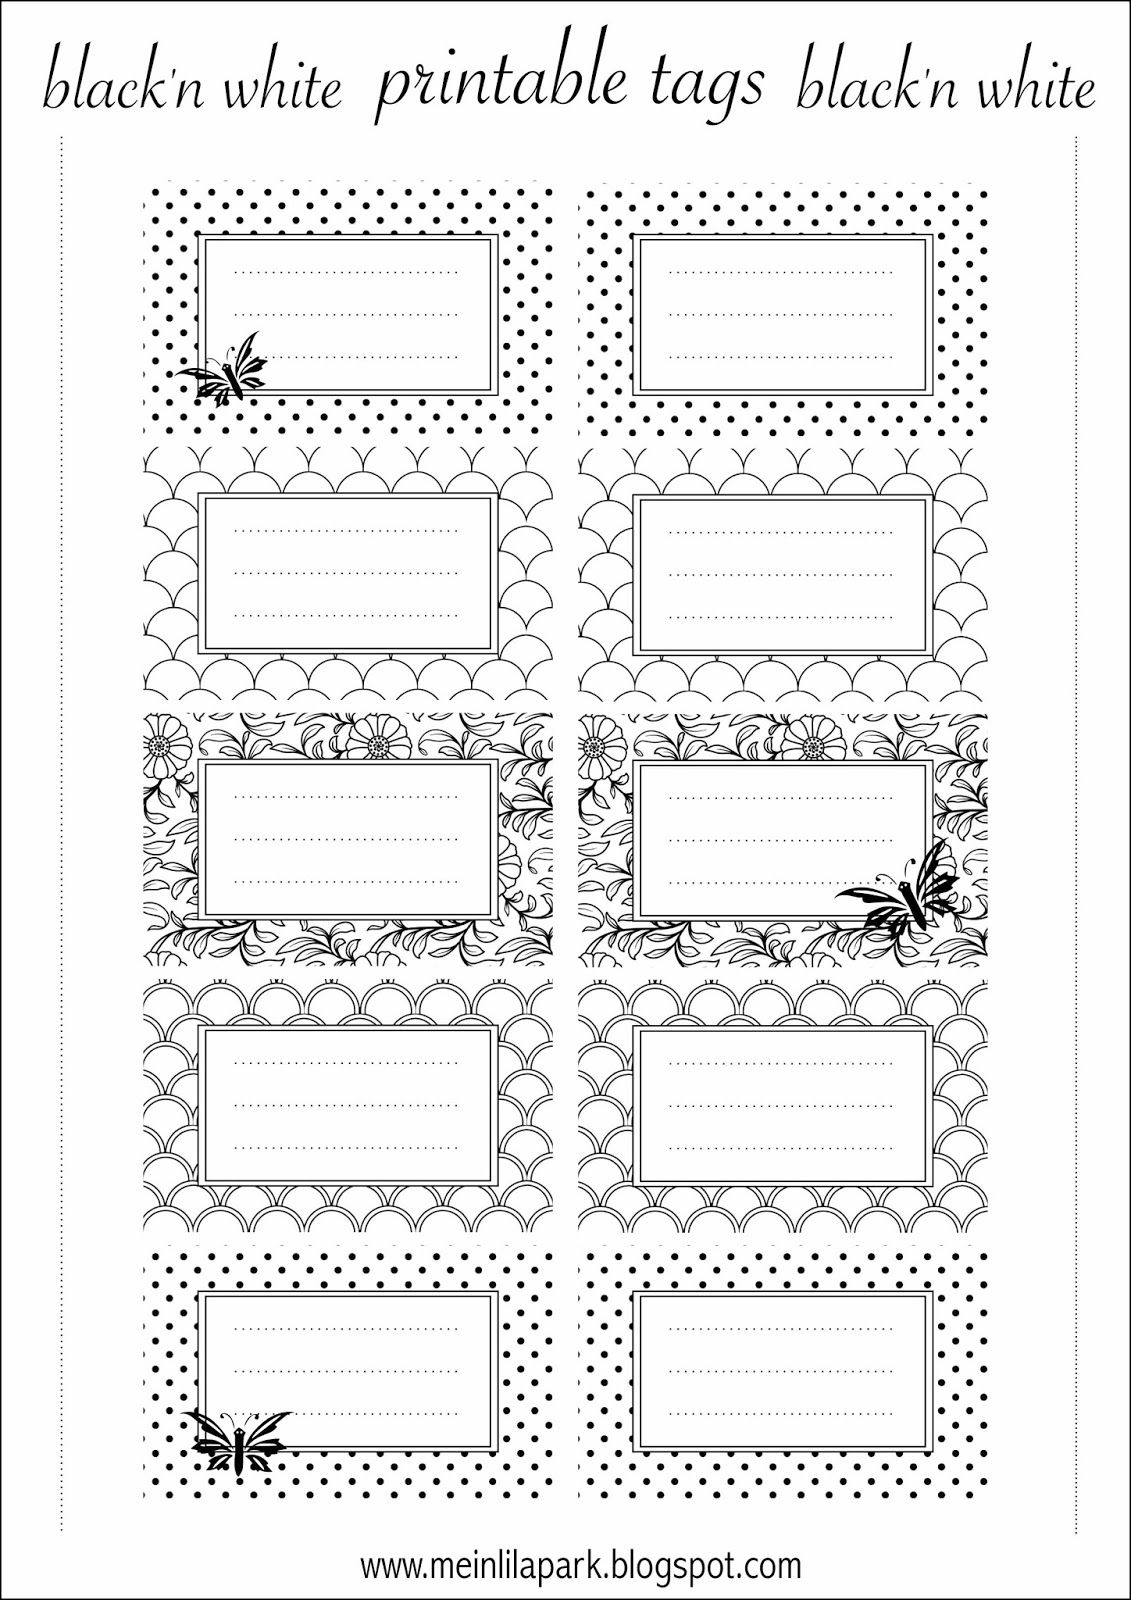 D Artiste Character Design Pdf Free Download : Free printable tags blackandwhite for name plates